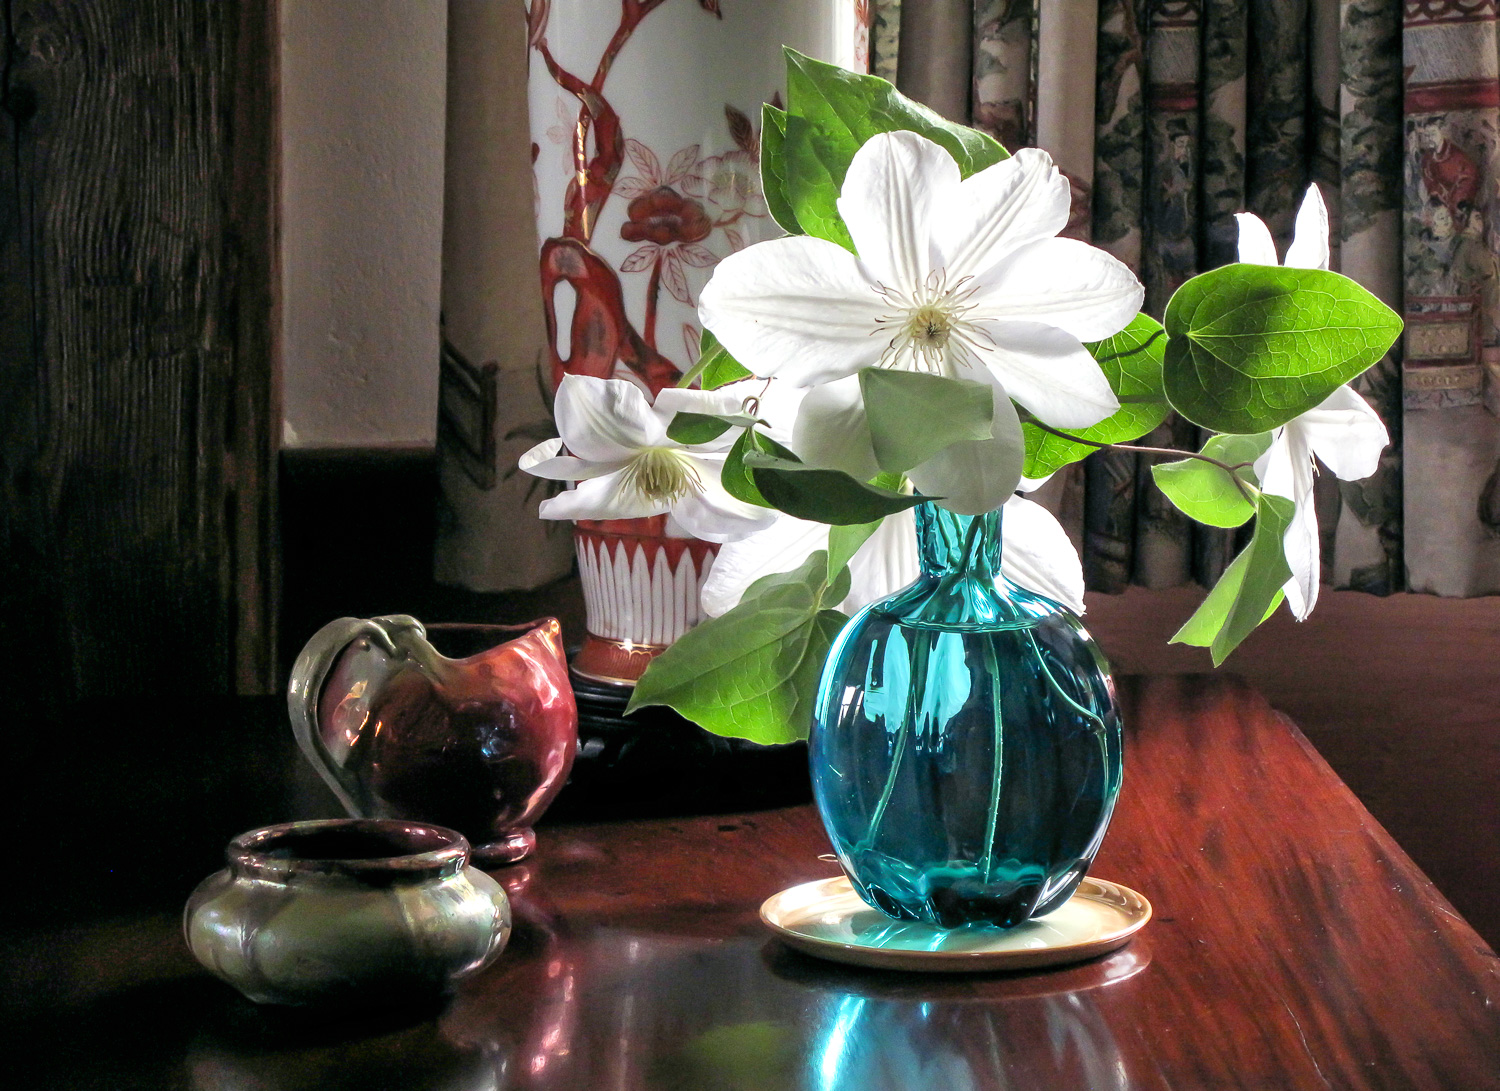 Lighted Vase with Flowers